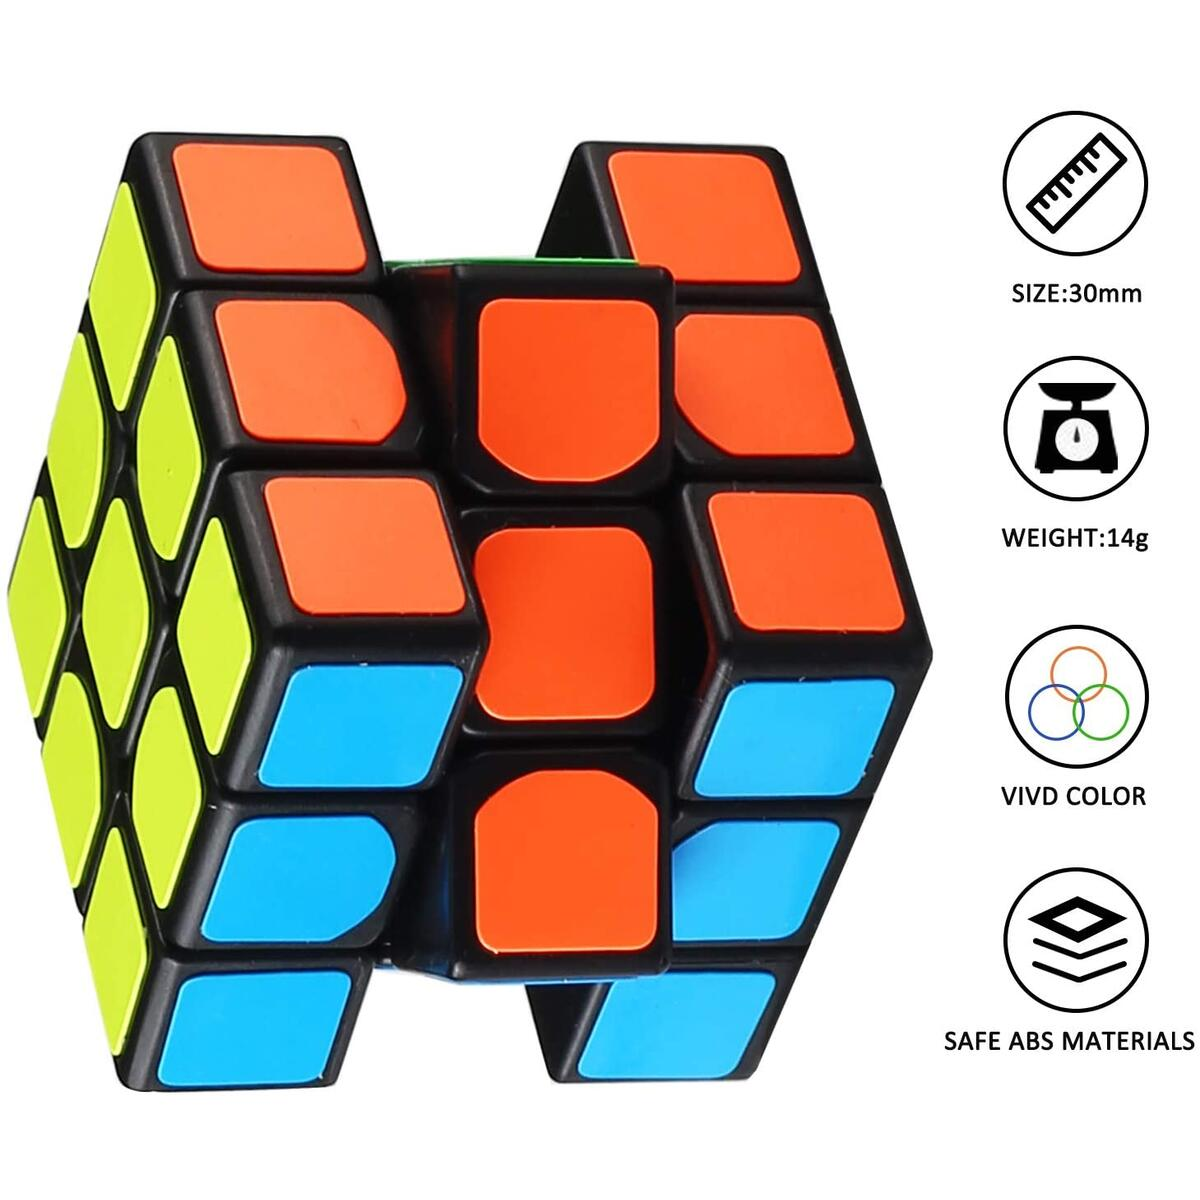 Mini Cube Puzzle Toy (40 Pack), Eco-Friendly Material with Vivid Colors, Magic Cube Goody Bag Filler Birthday Gift for Boy Girl Kid Child, Perfect Party Favor School Supplies Puzzle Game Boxes